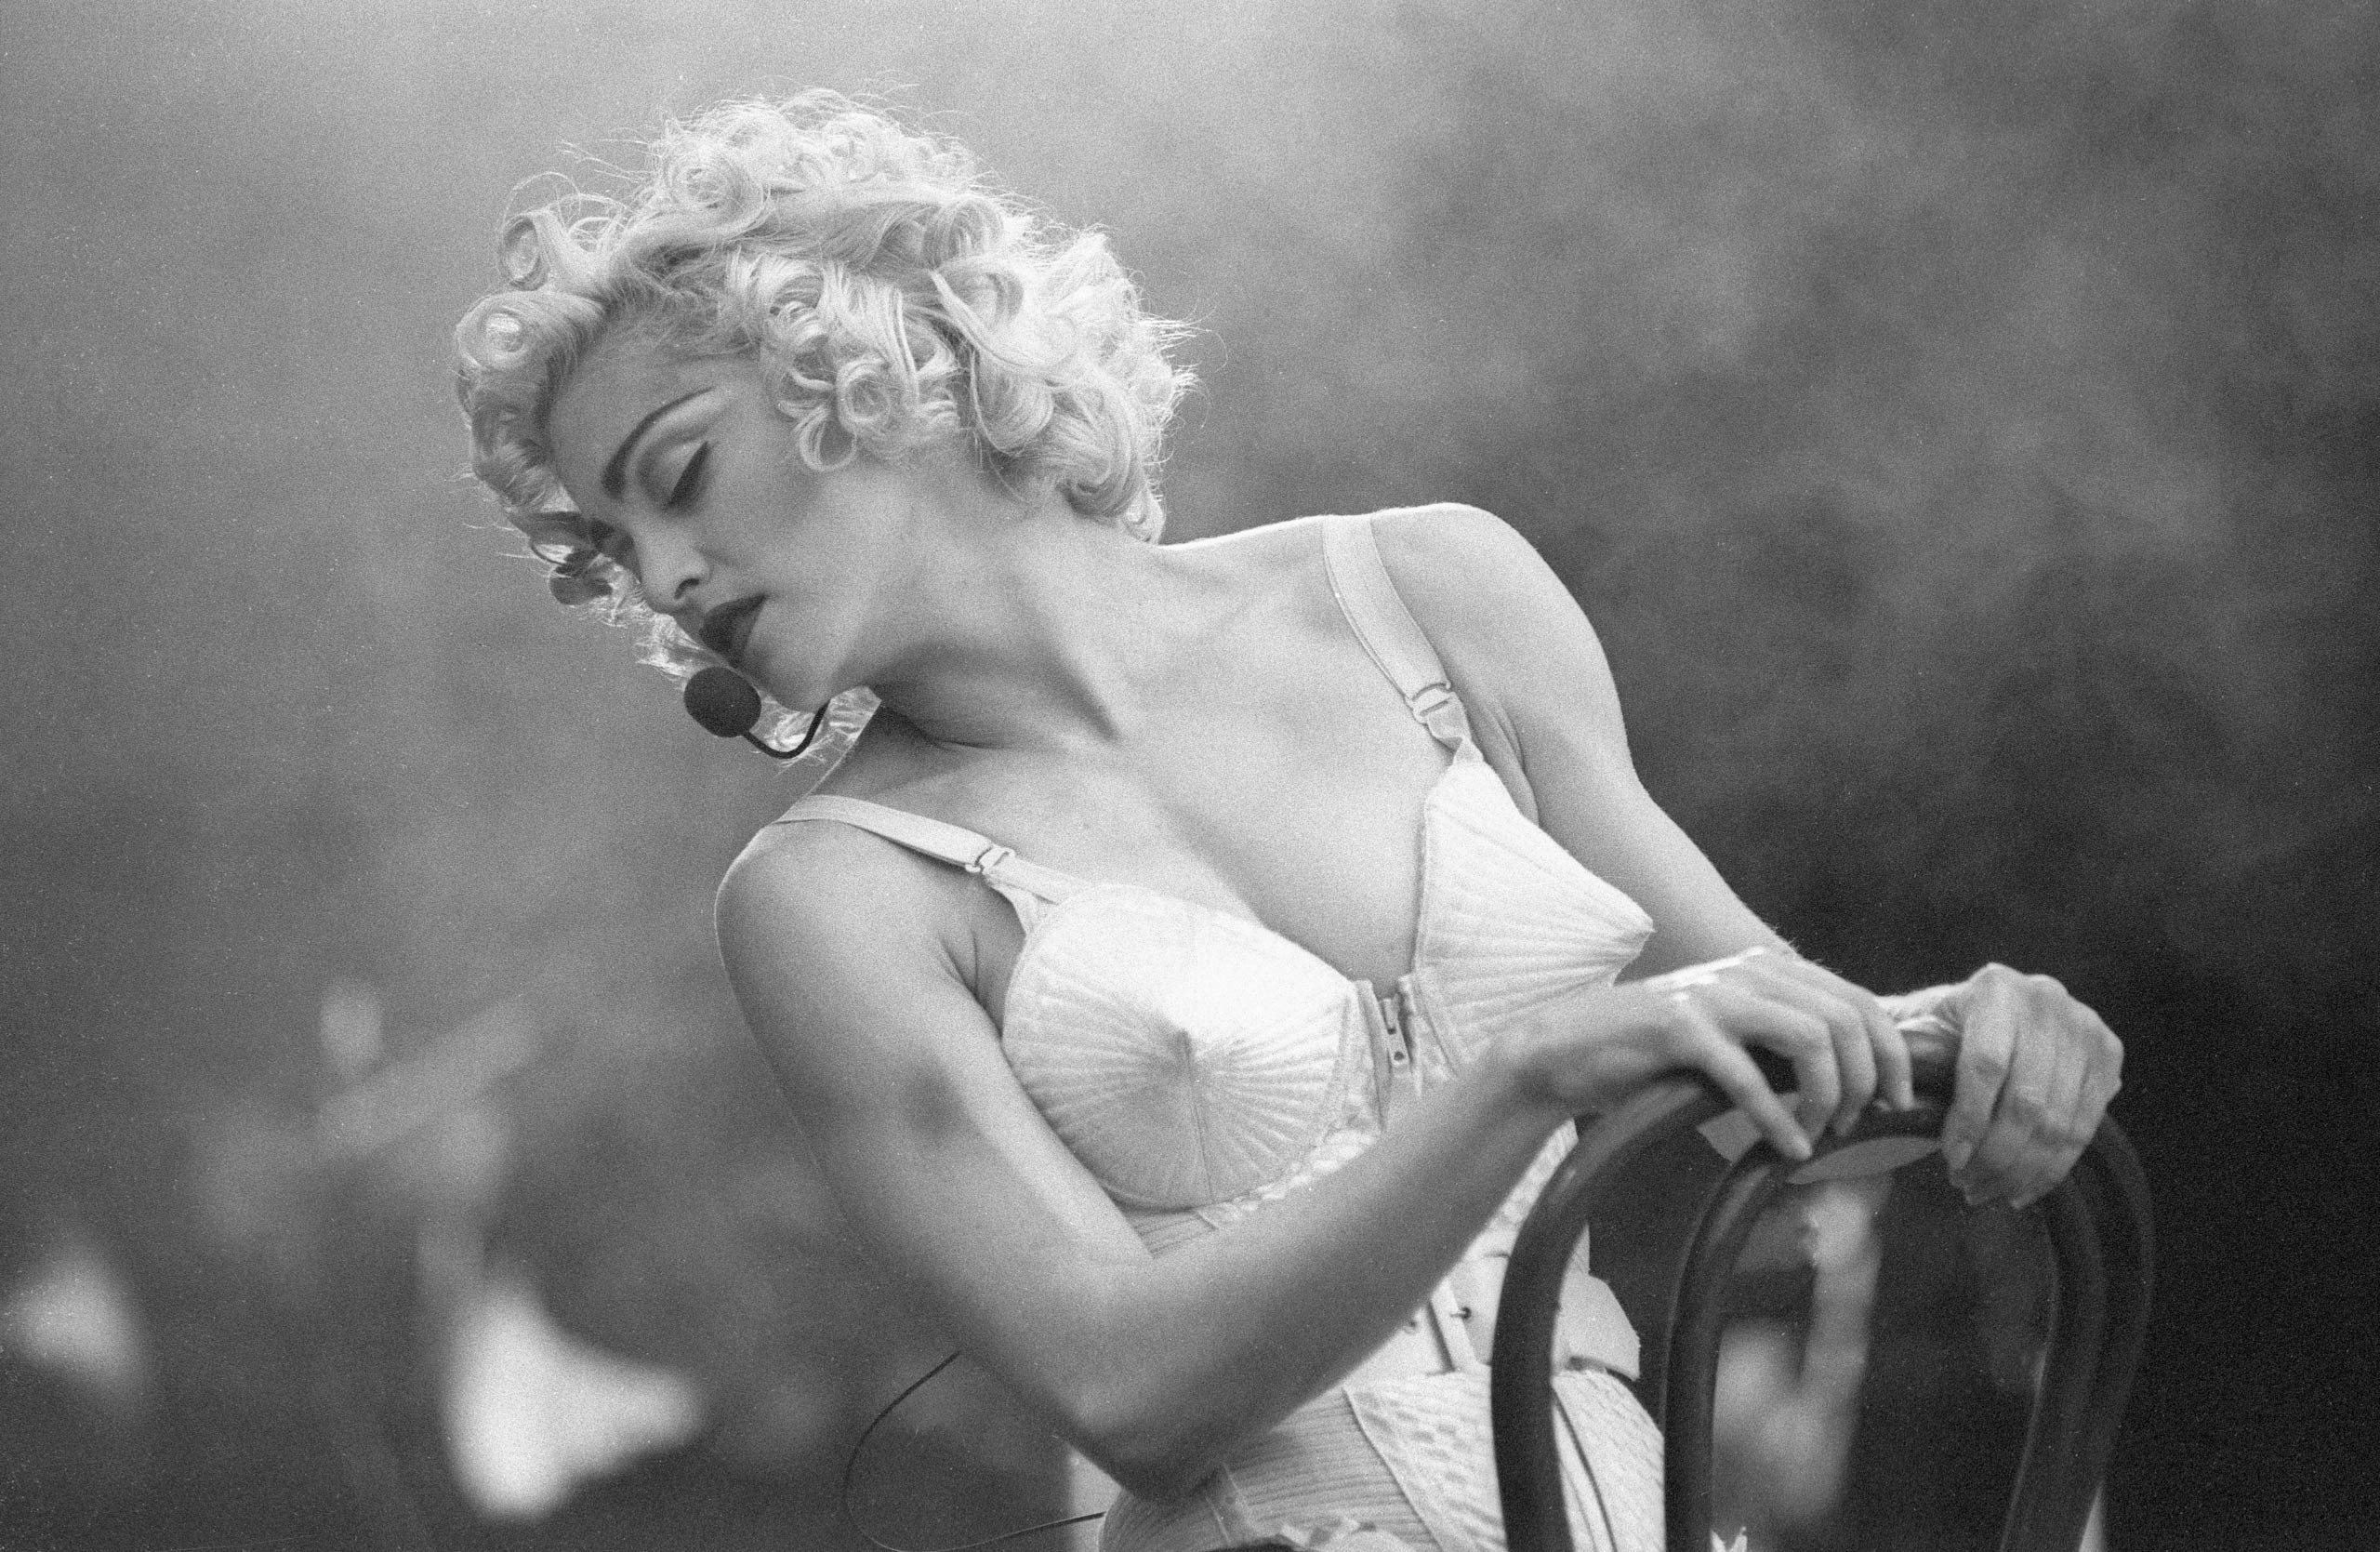 Madonna performs at Feijenoord Stadium in Rotterdam, Netherlands in 1990.